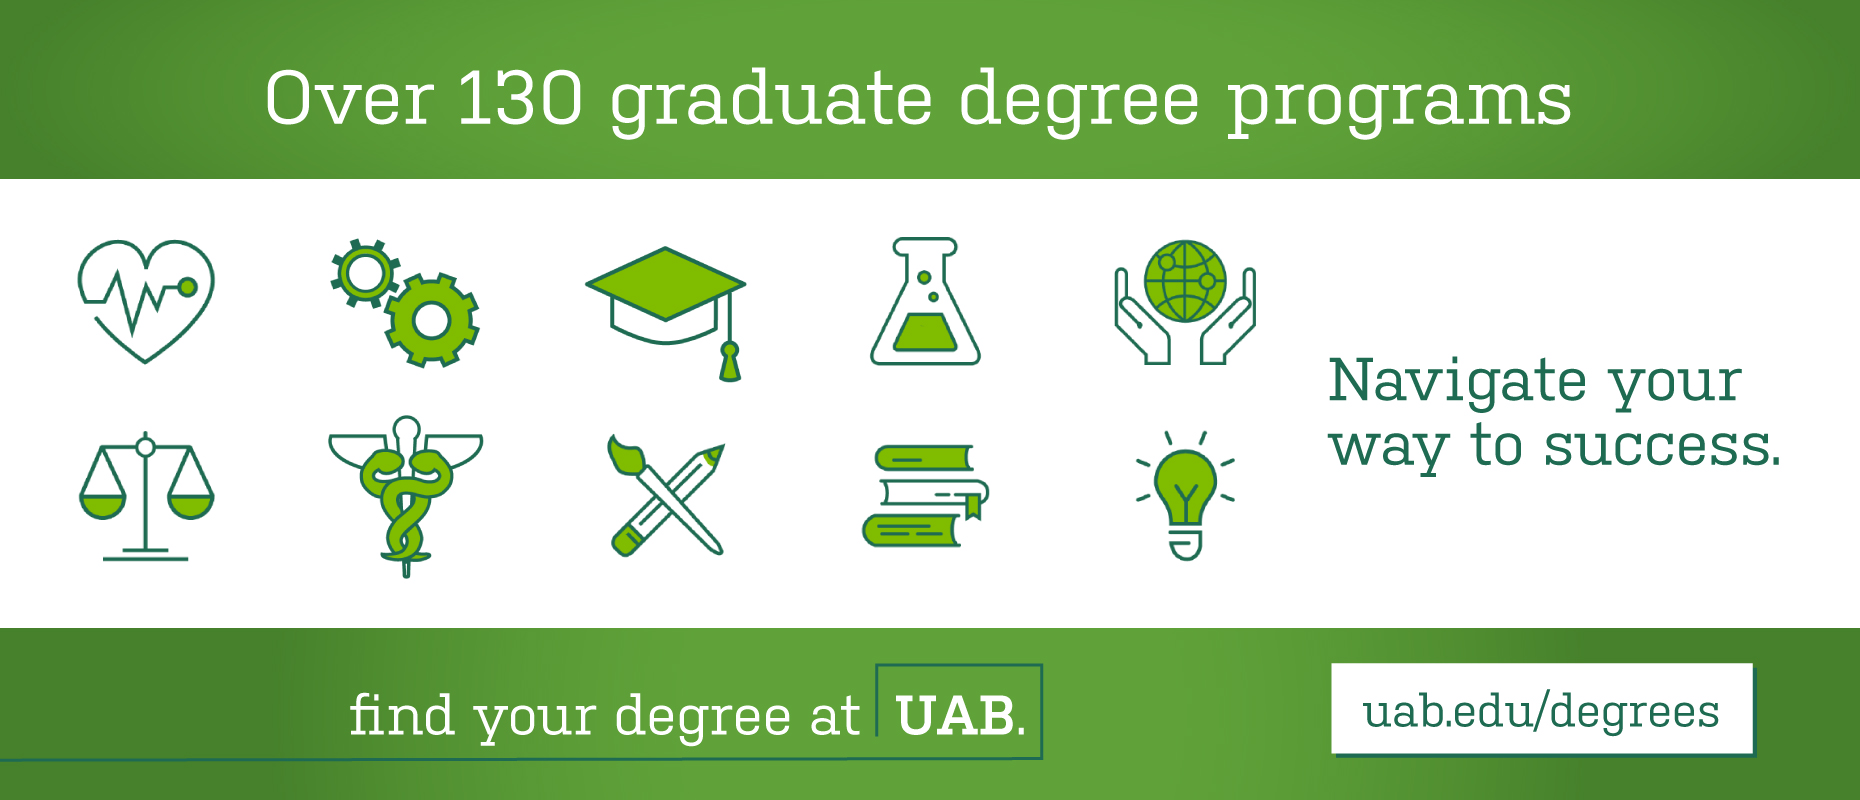 Over 130 graduate degree programs. Find your degree at UAB